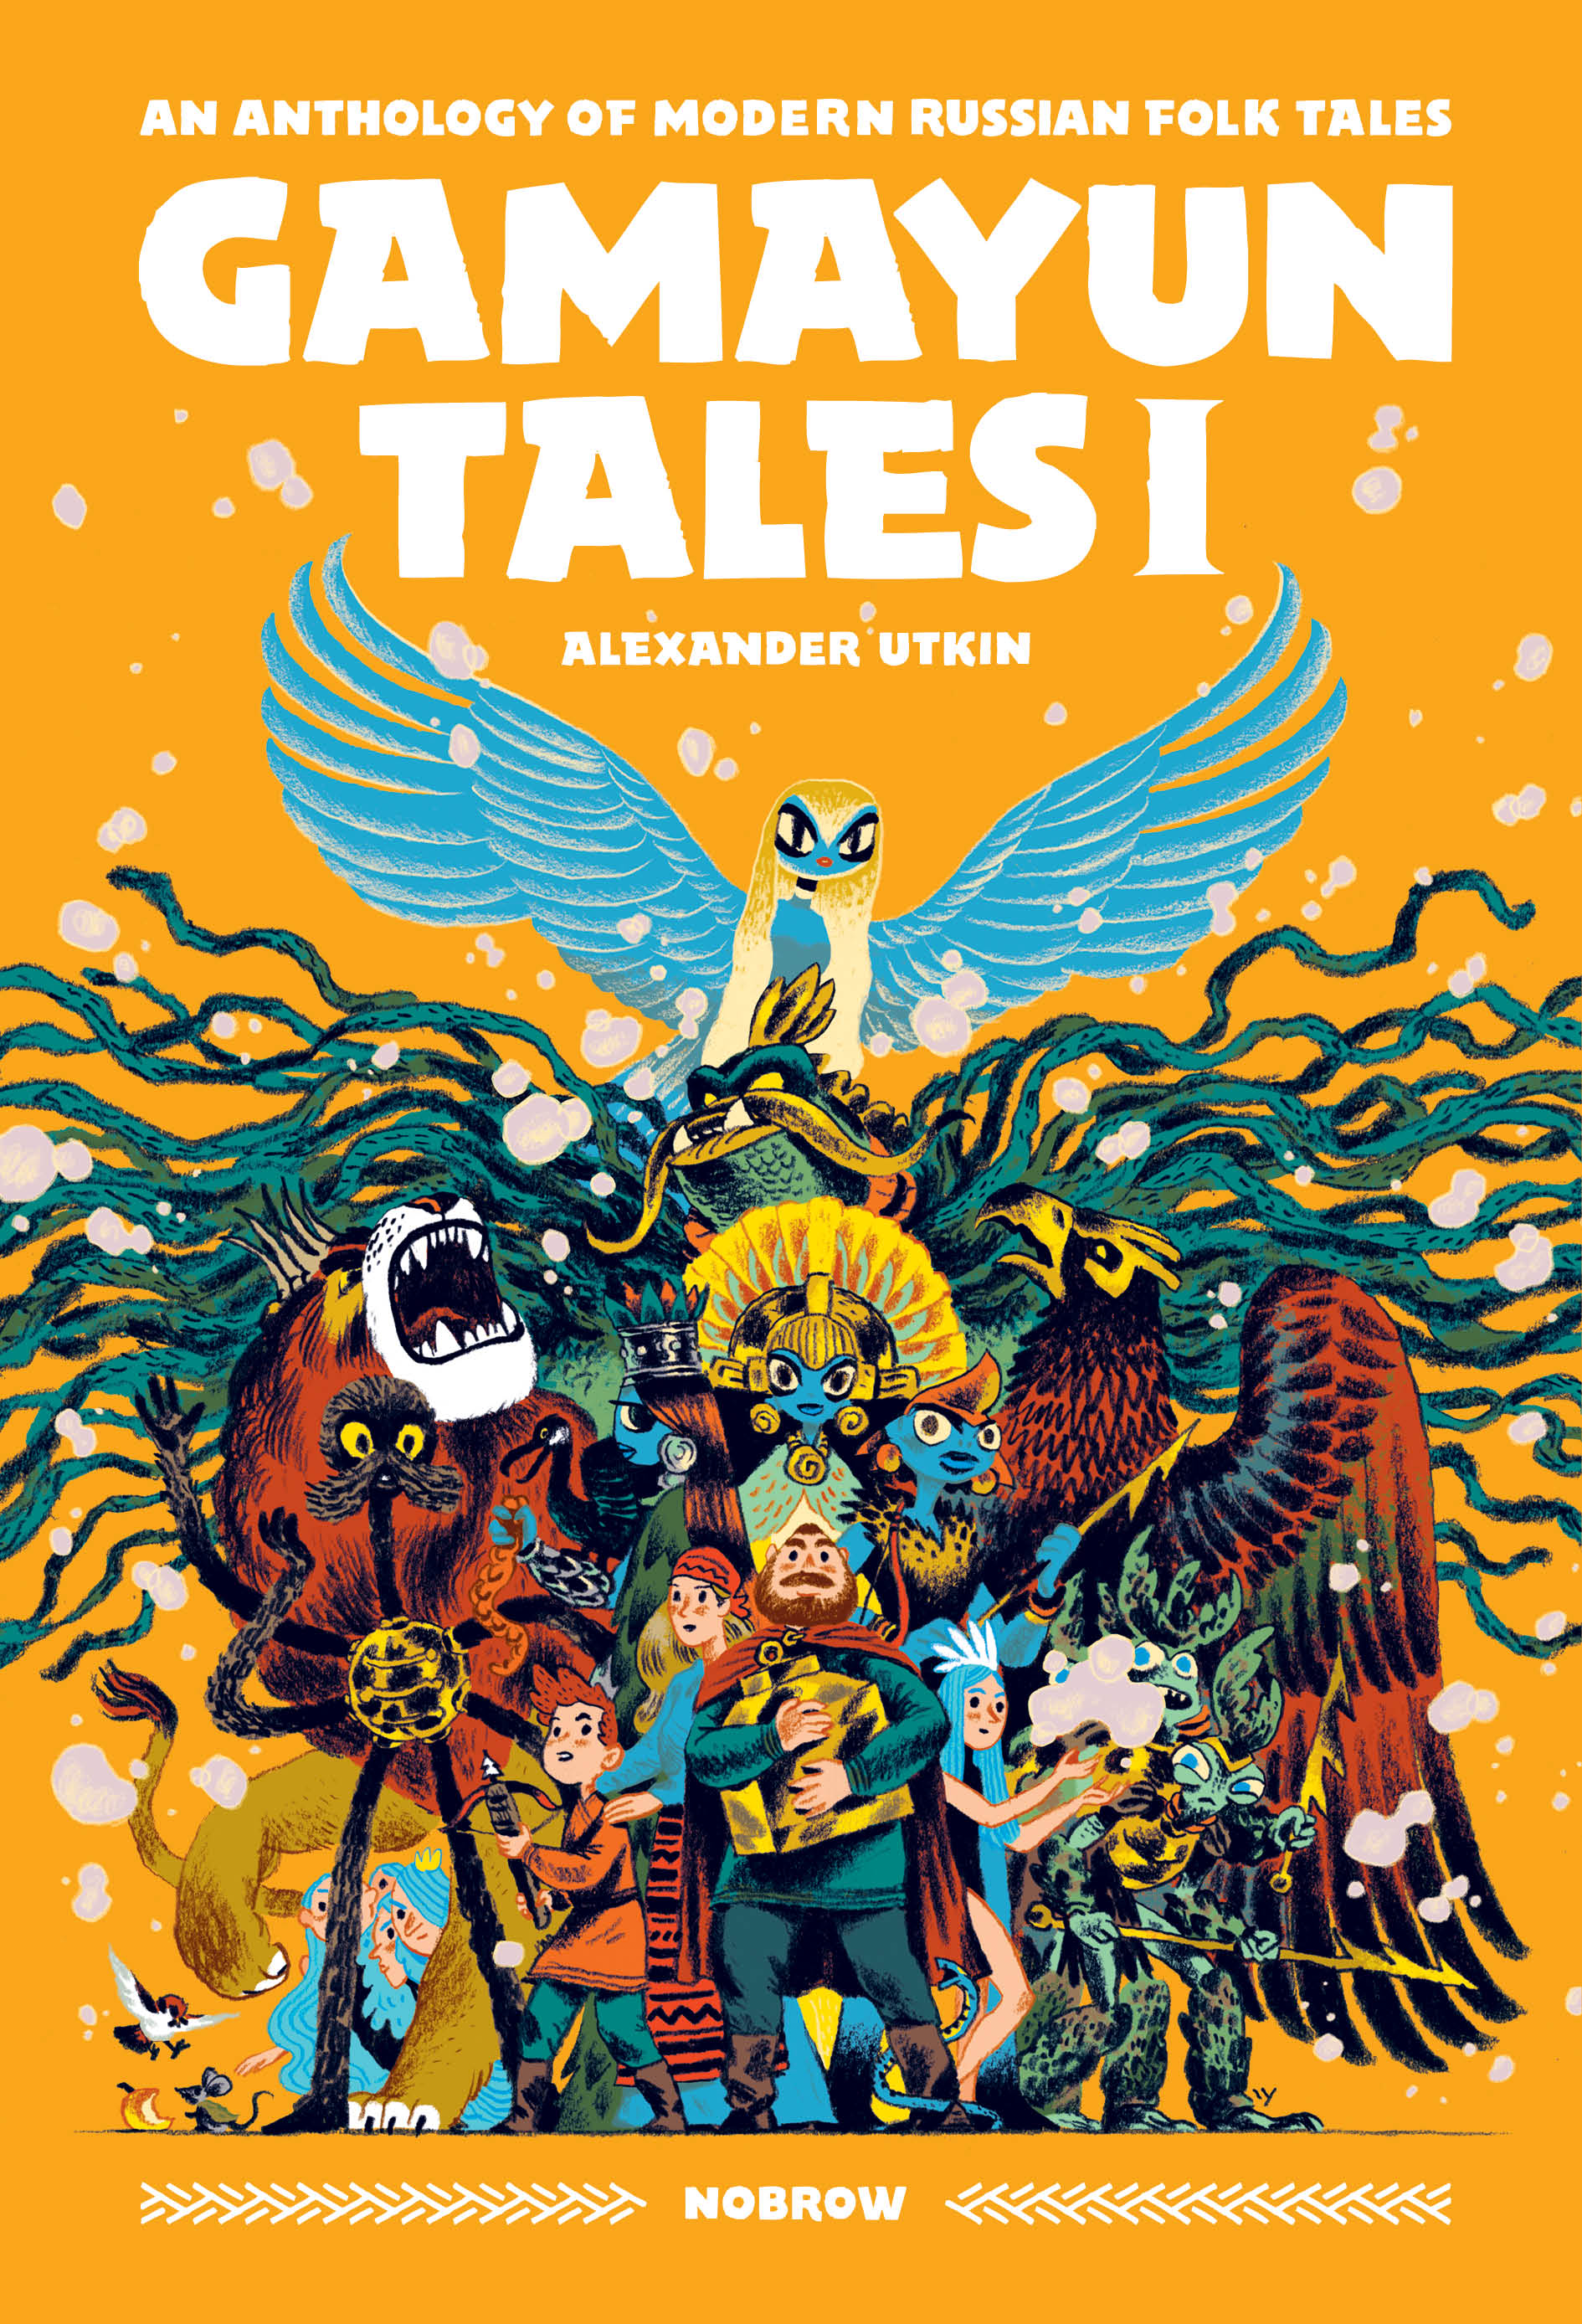 Gamayun Tales I: An Anthology of Modern Russian Folk Tales